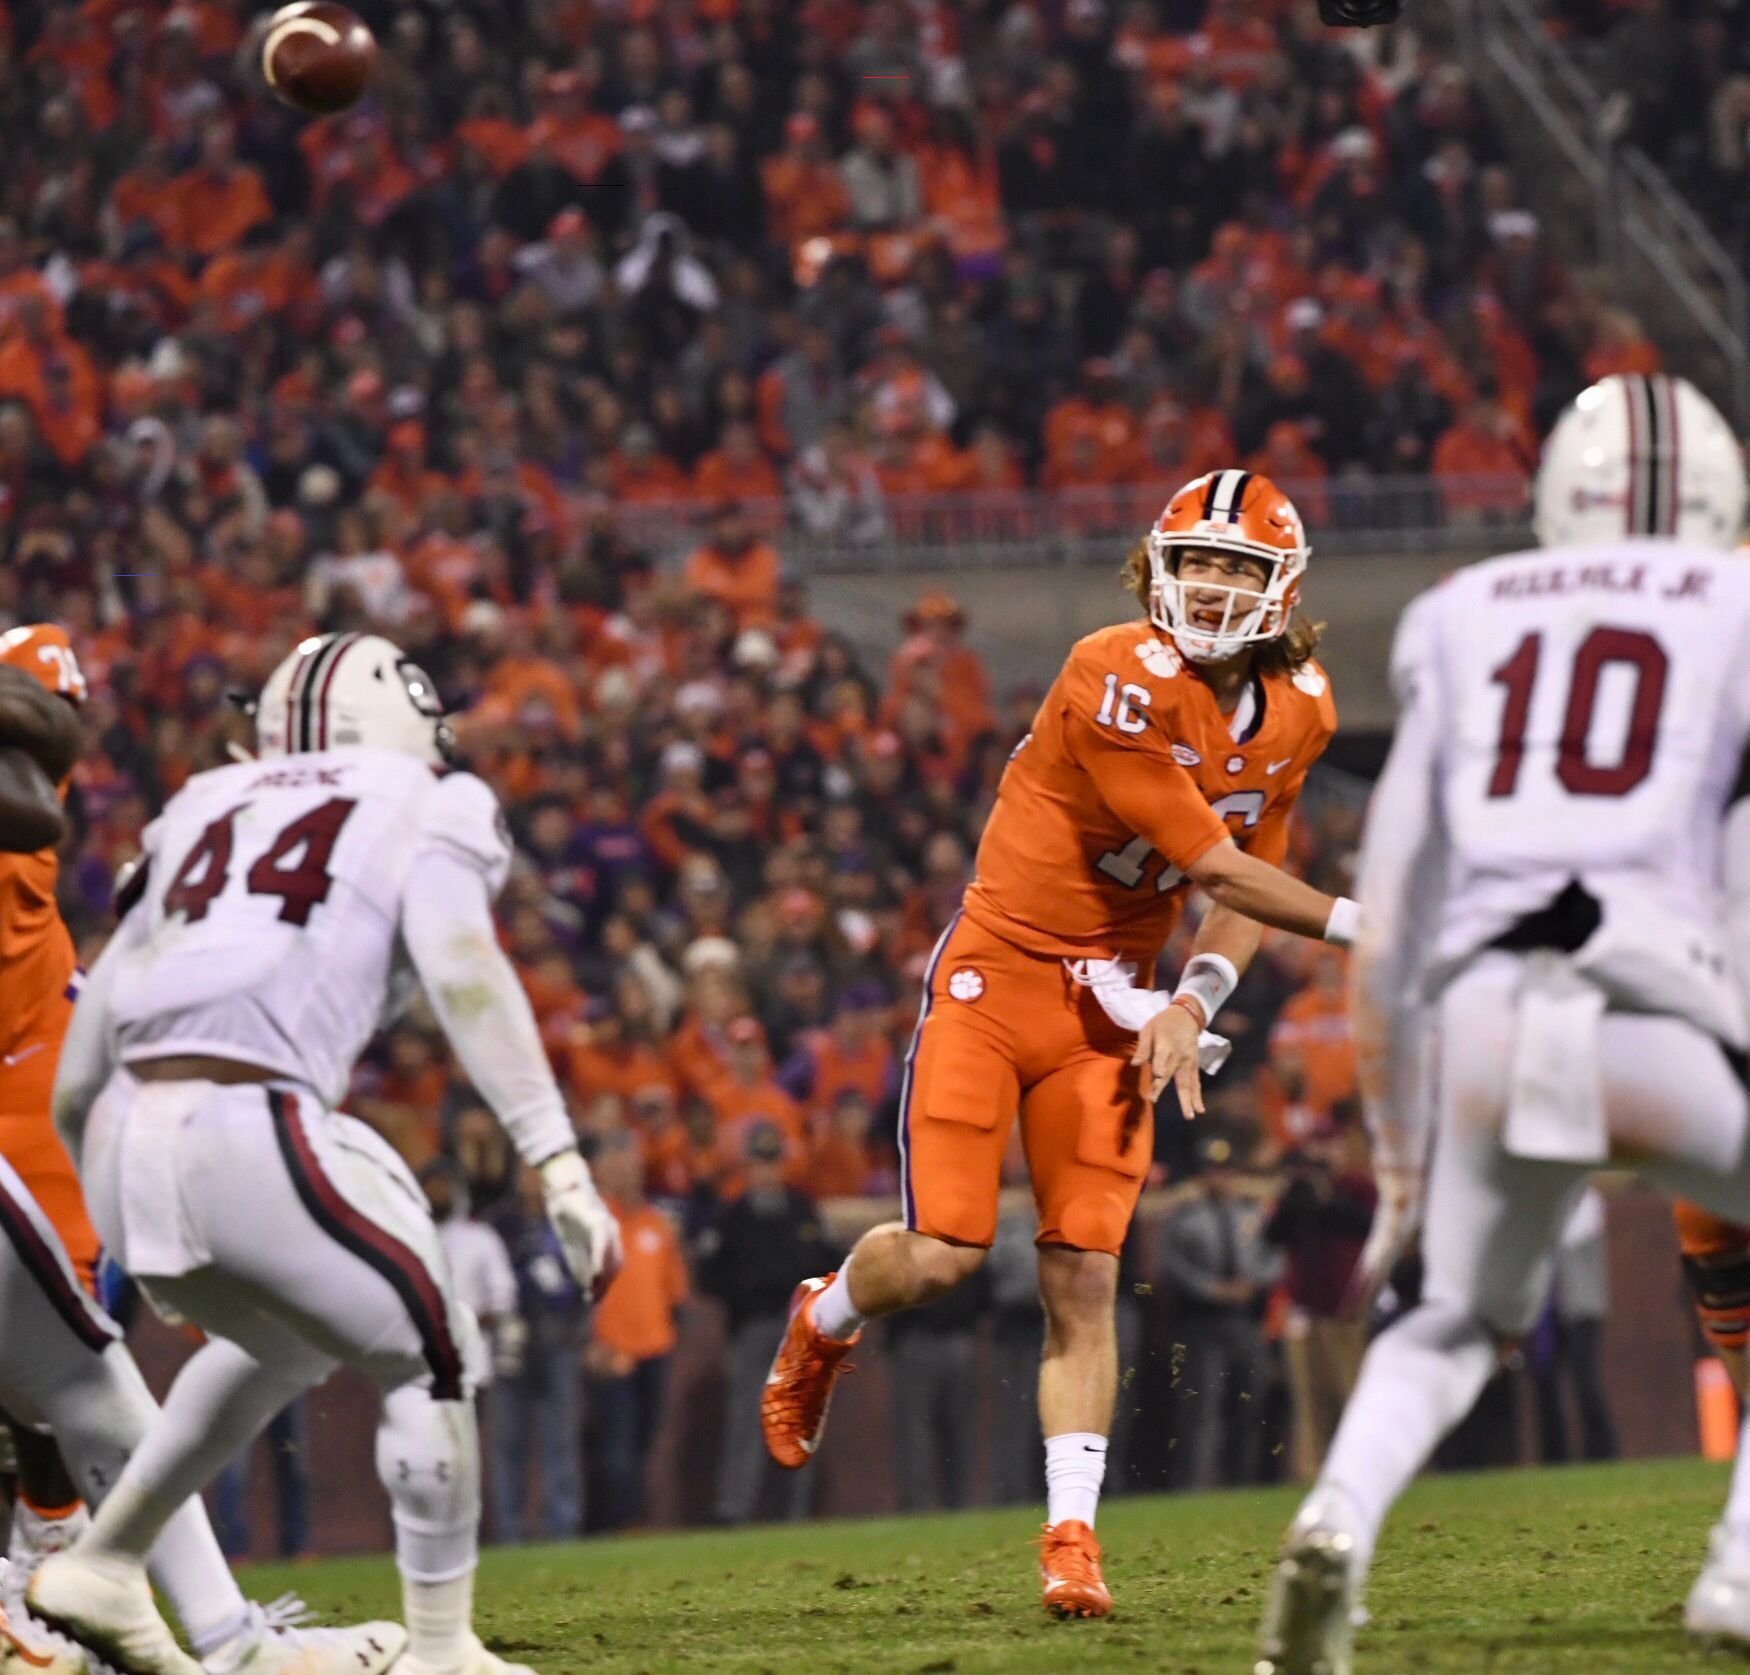 Trevorlawrence In 2020 Clemson Football Football College Football Playoff